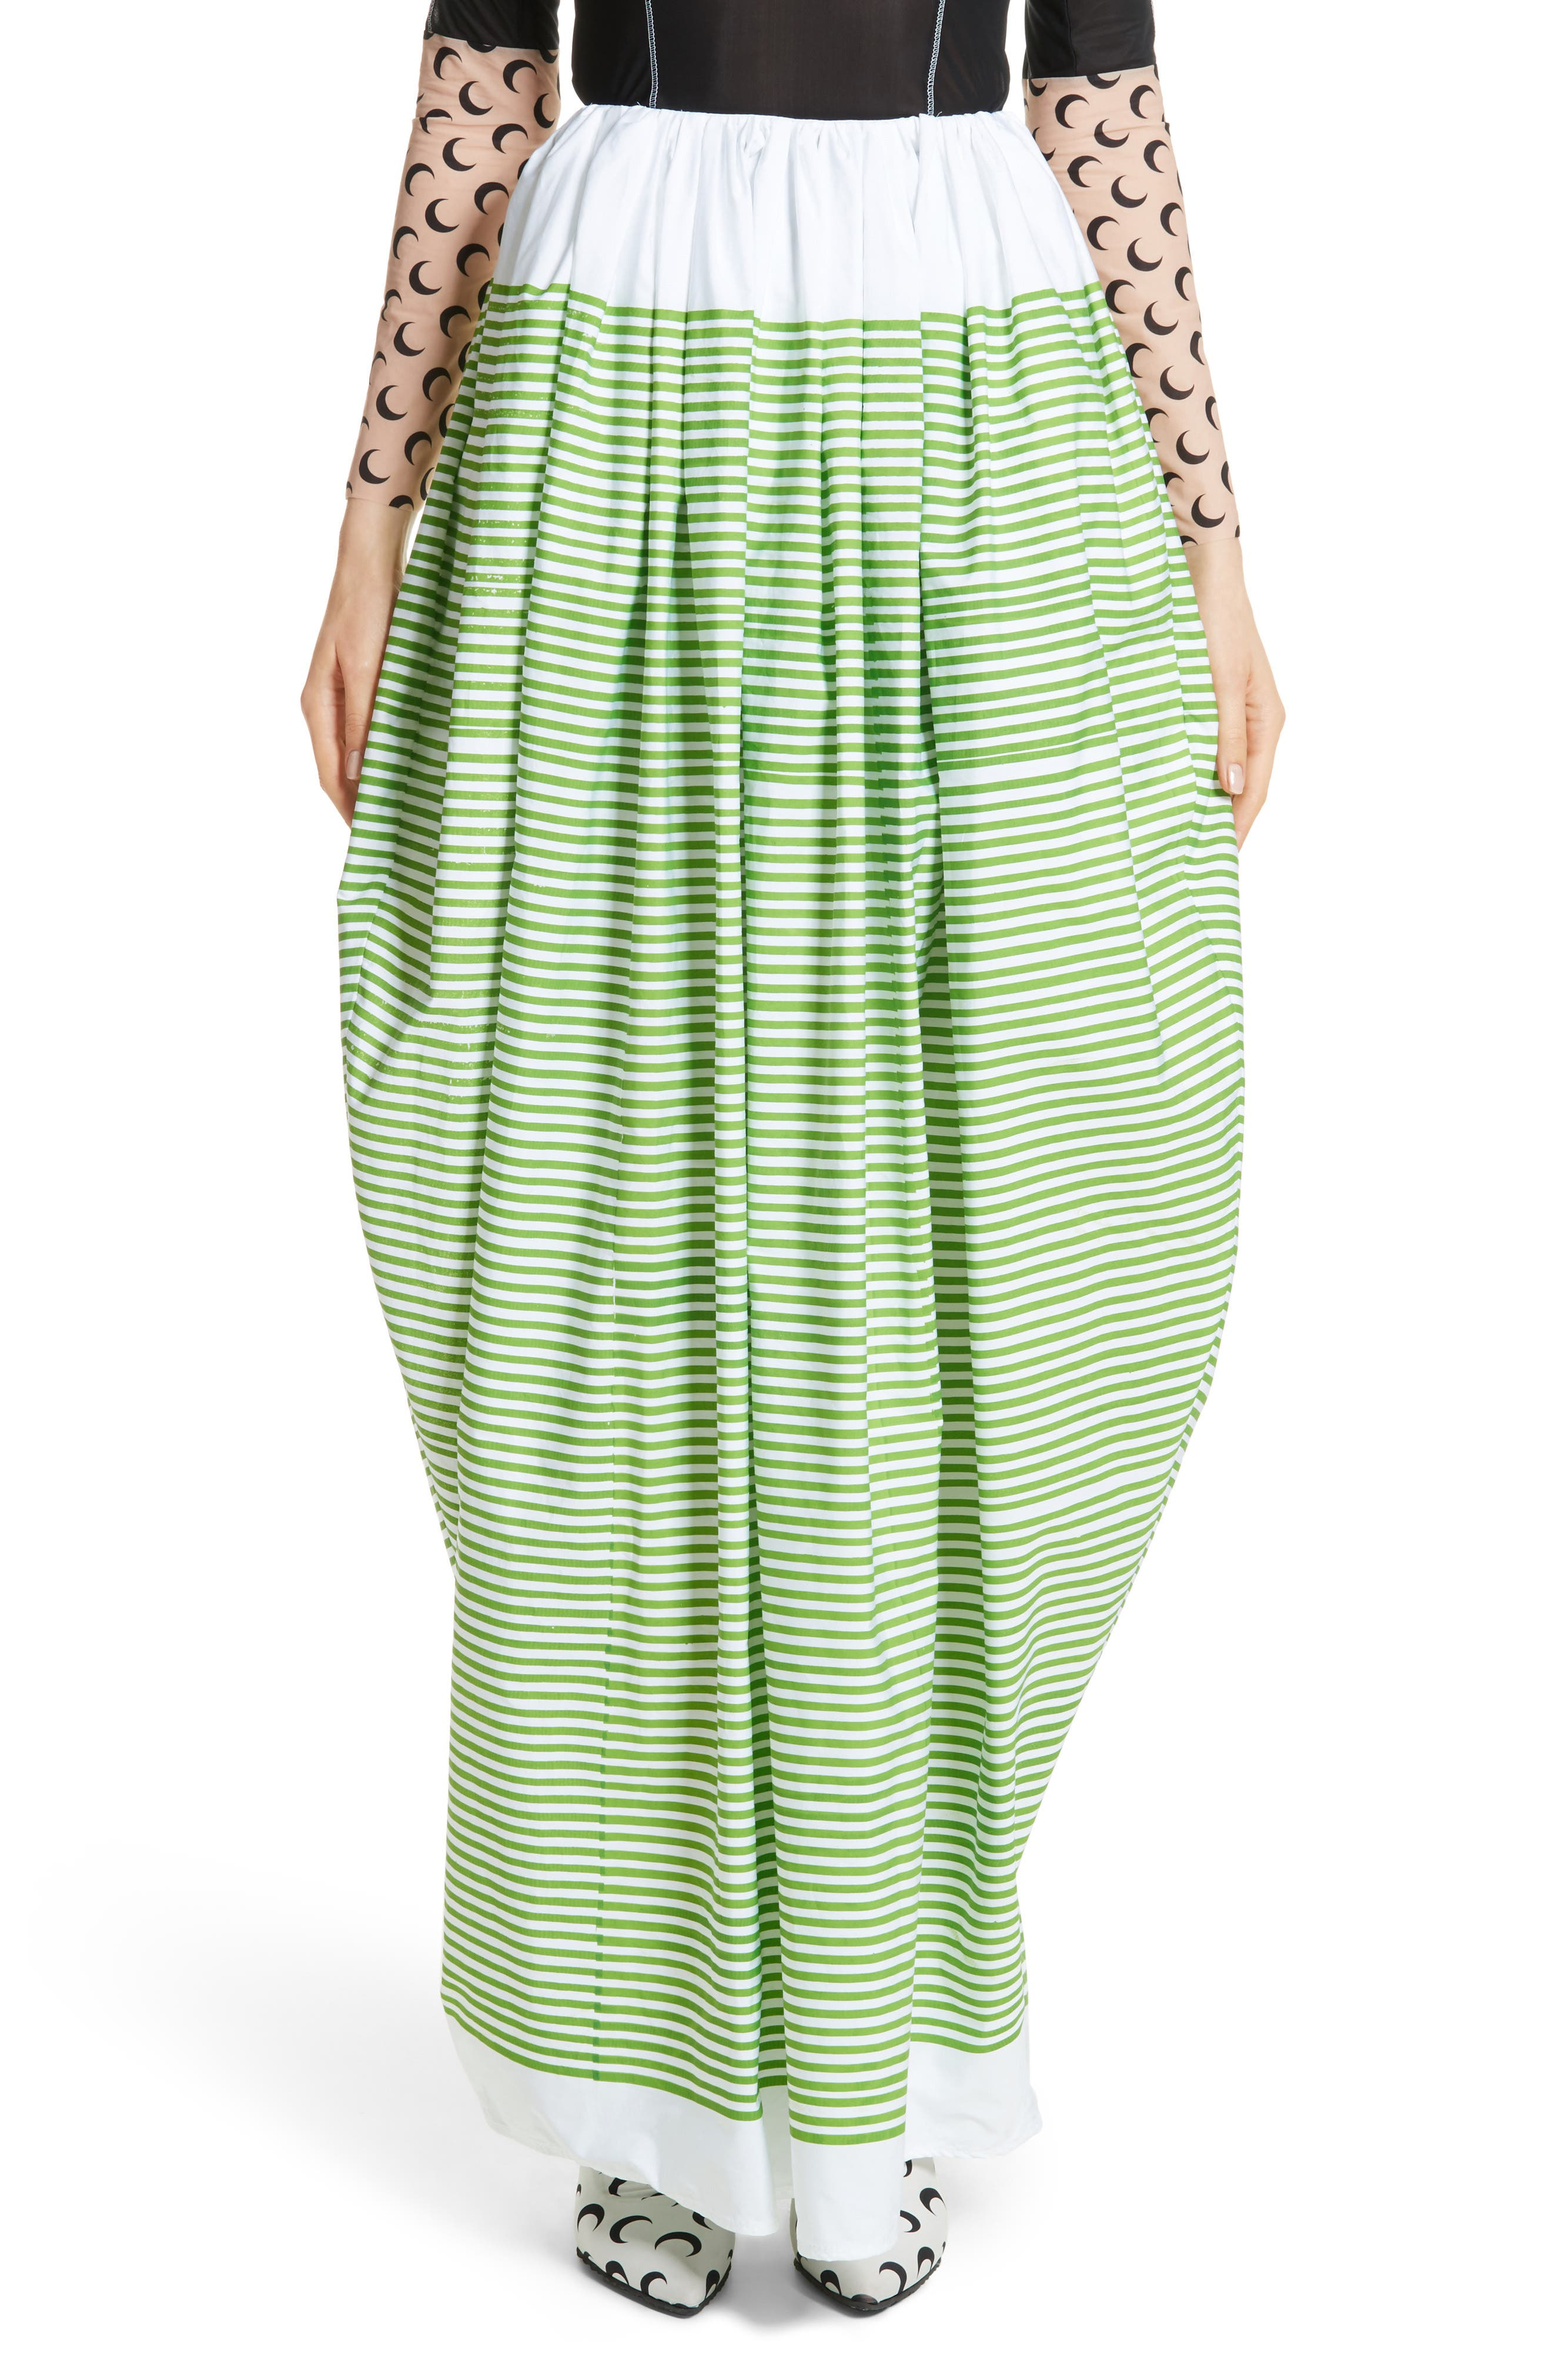 Stripe Ball Skirt,                             Main thumbnail 1, color,                             Green Striped